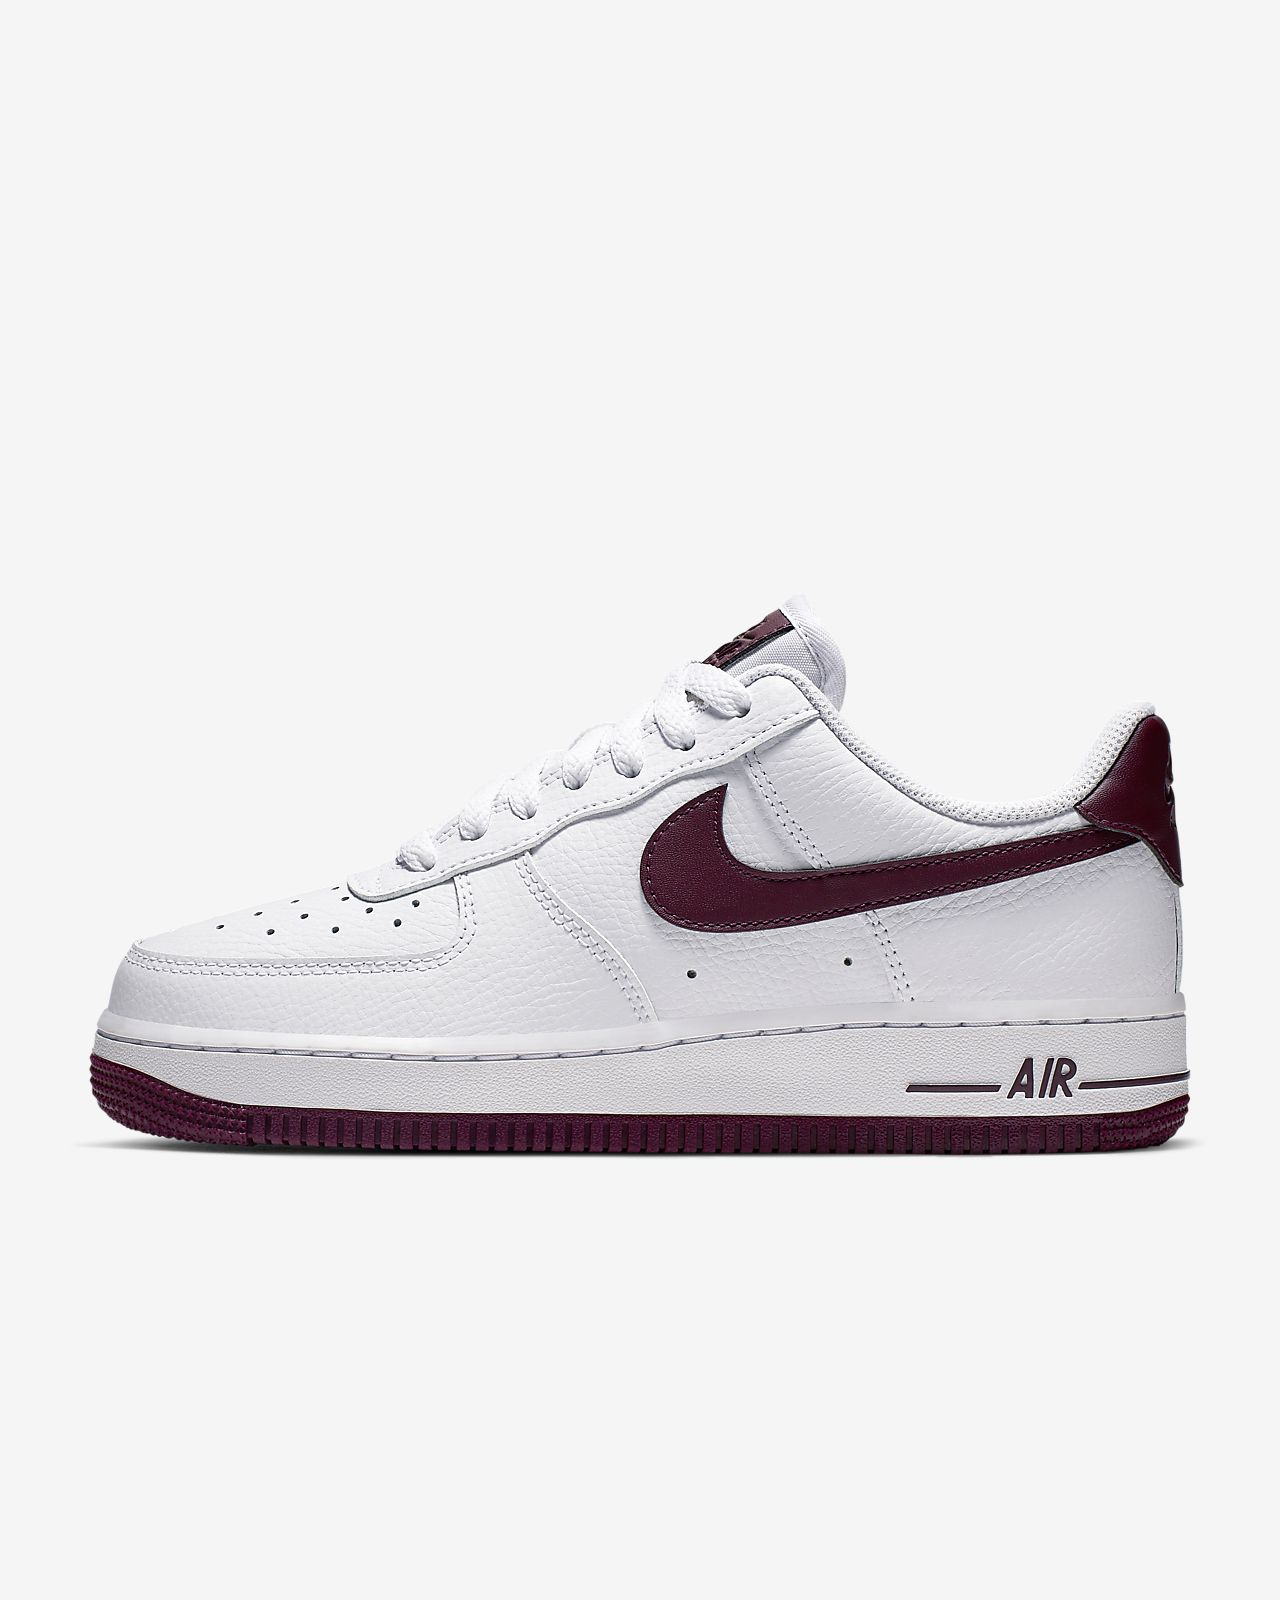 81c094de91a5 Nike Air Force 1  07 Patent Women s Shoe. Nike.com ZA